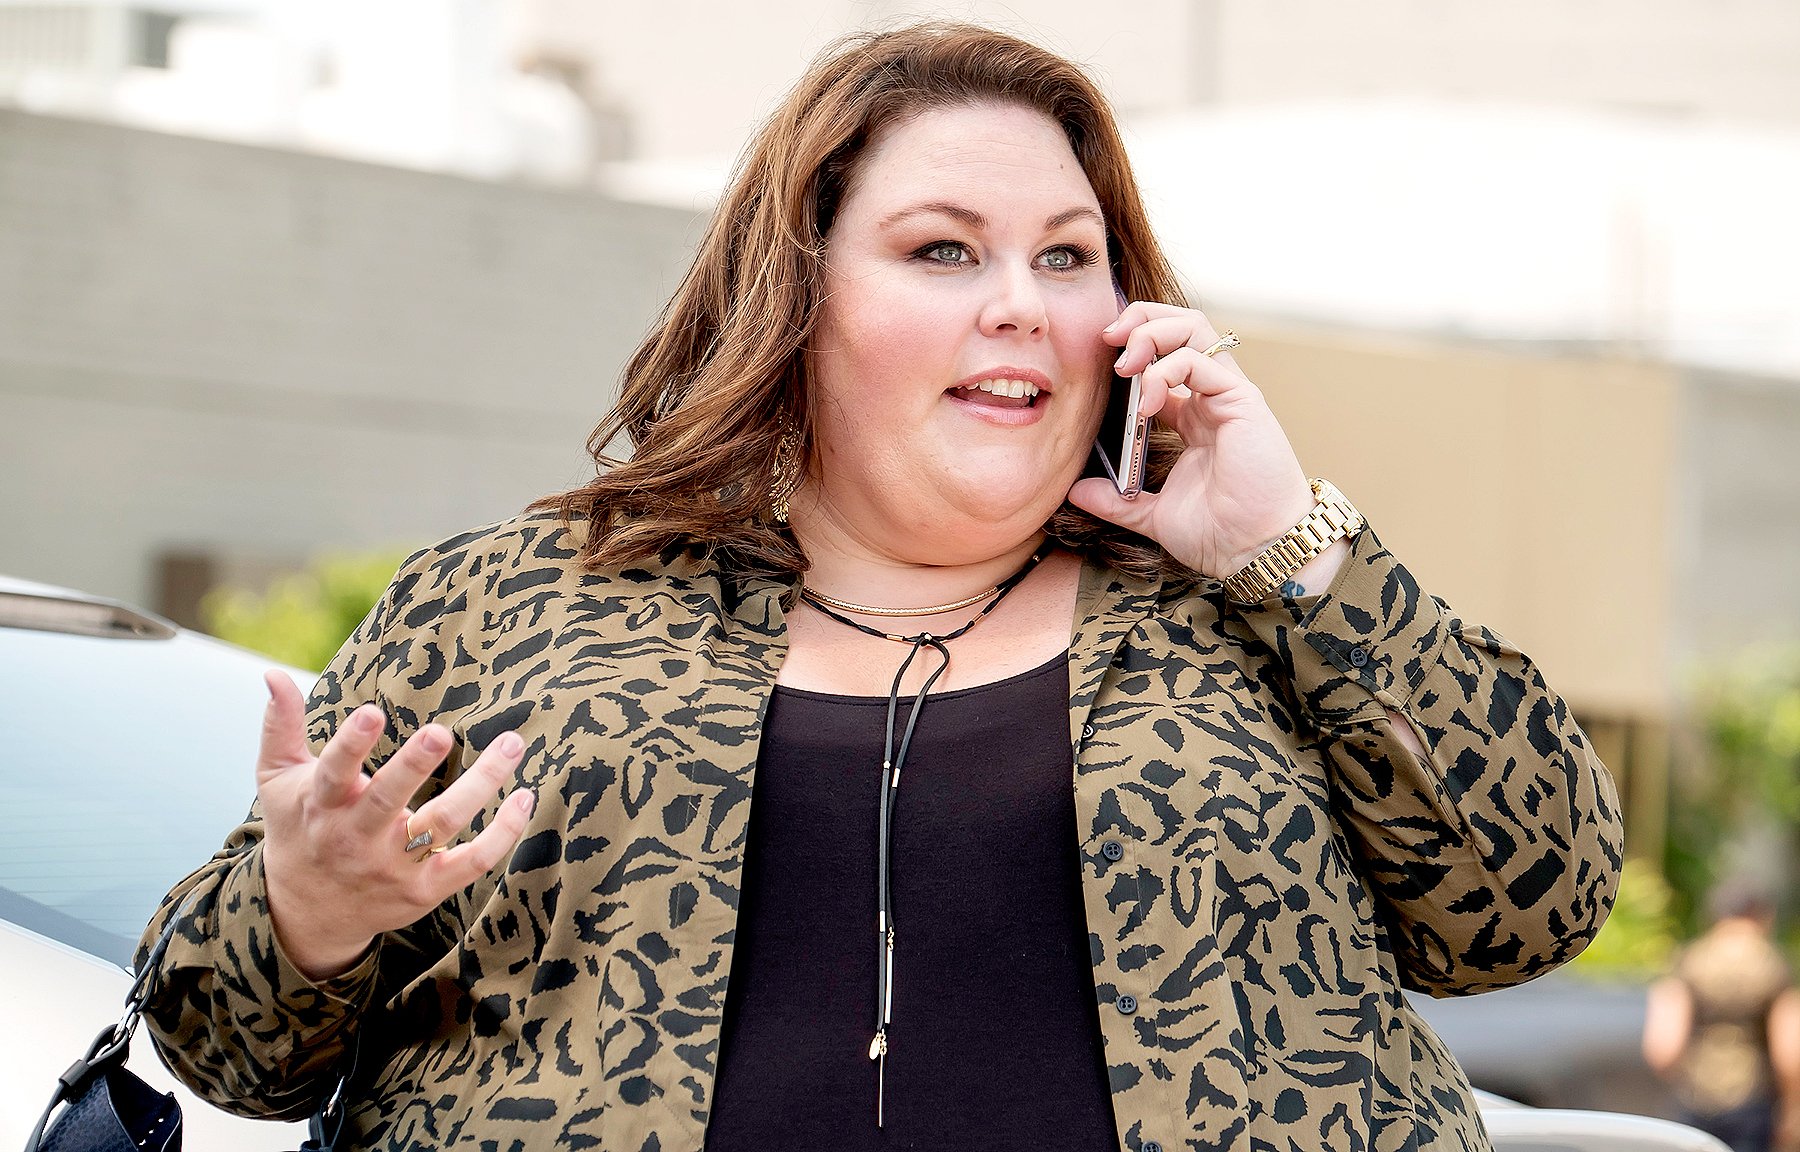 Chrissy Metz as Kate on This Is Us.